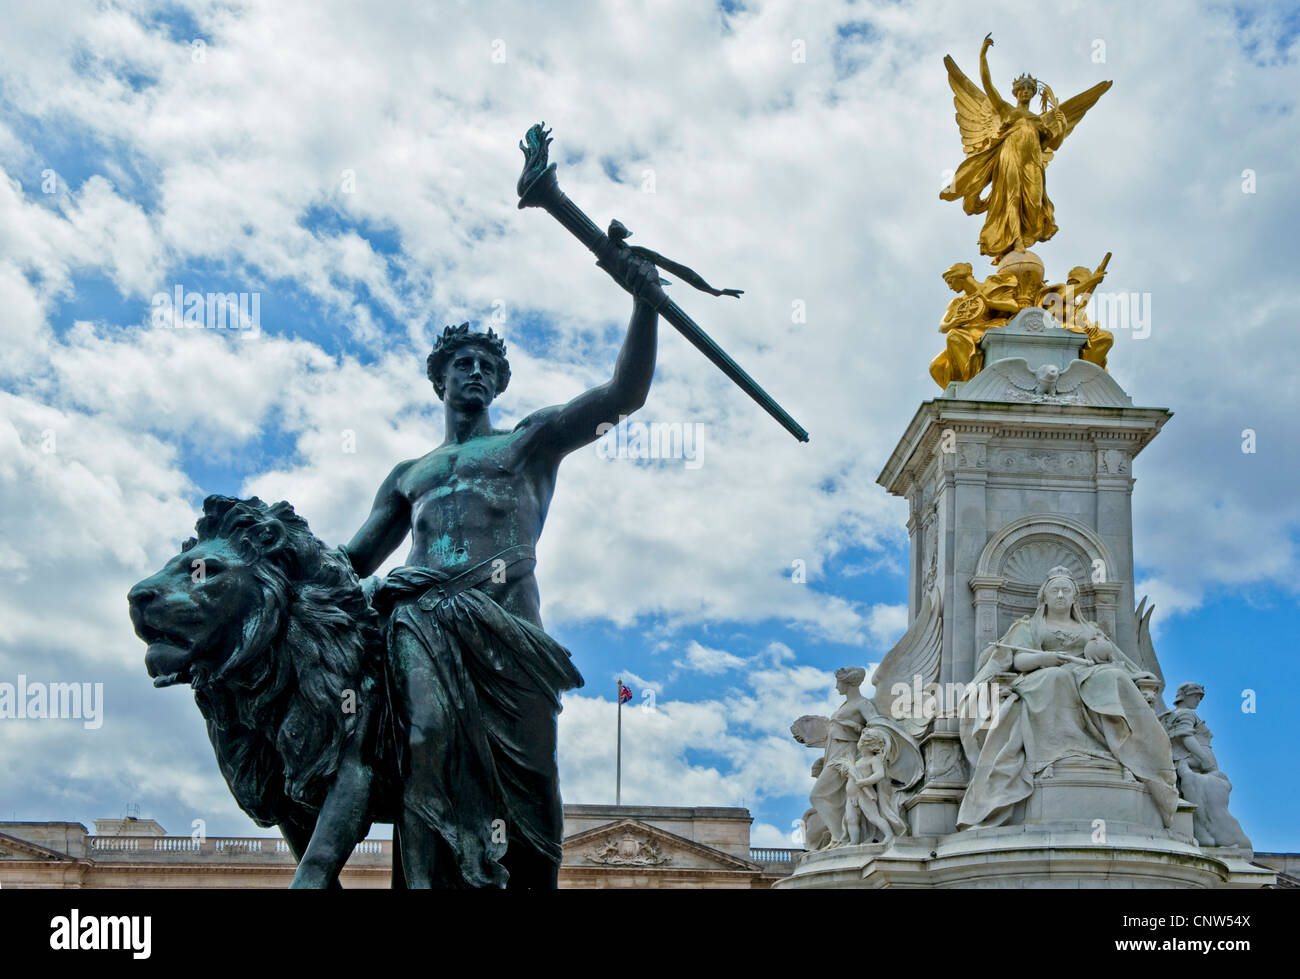 Europe England London,detail of the Victoria Queen monument in front of Buckingham palace - Stock Image